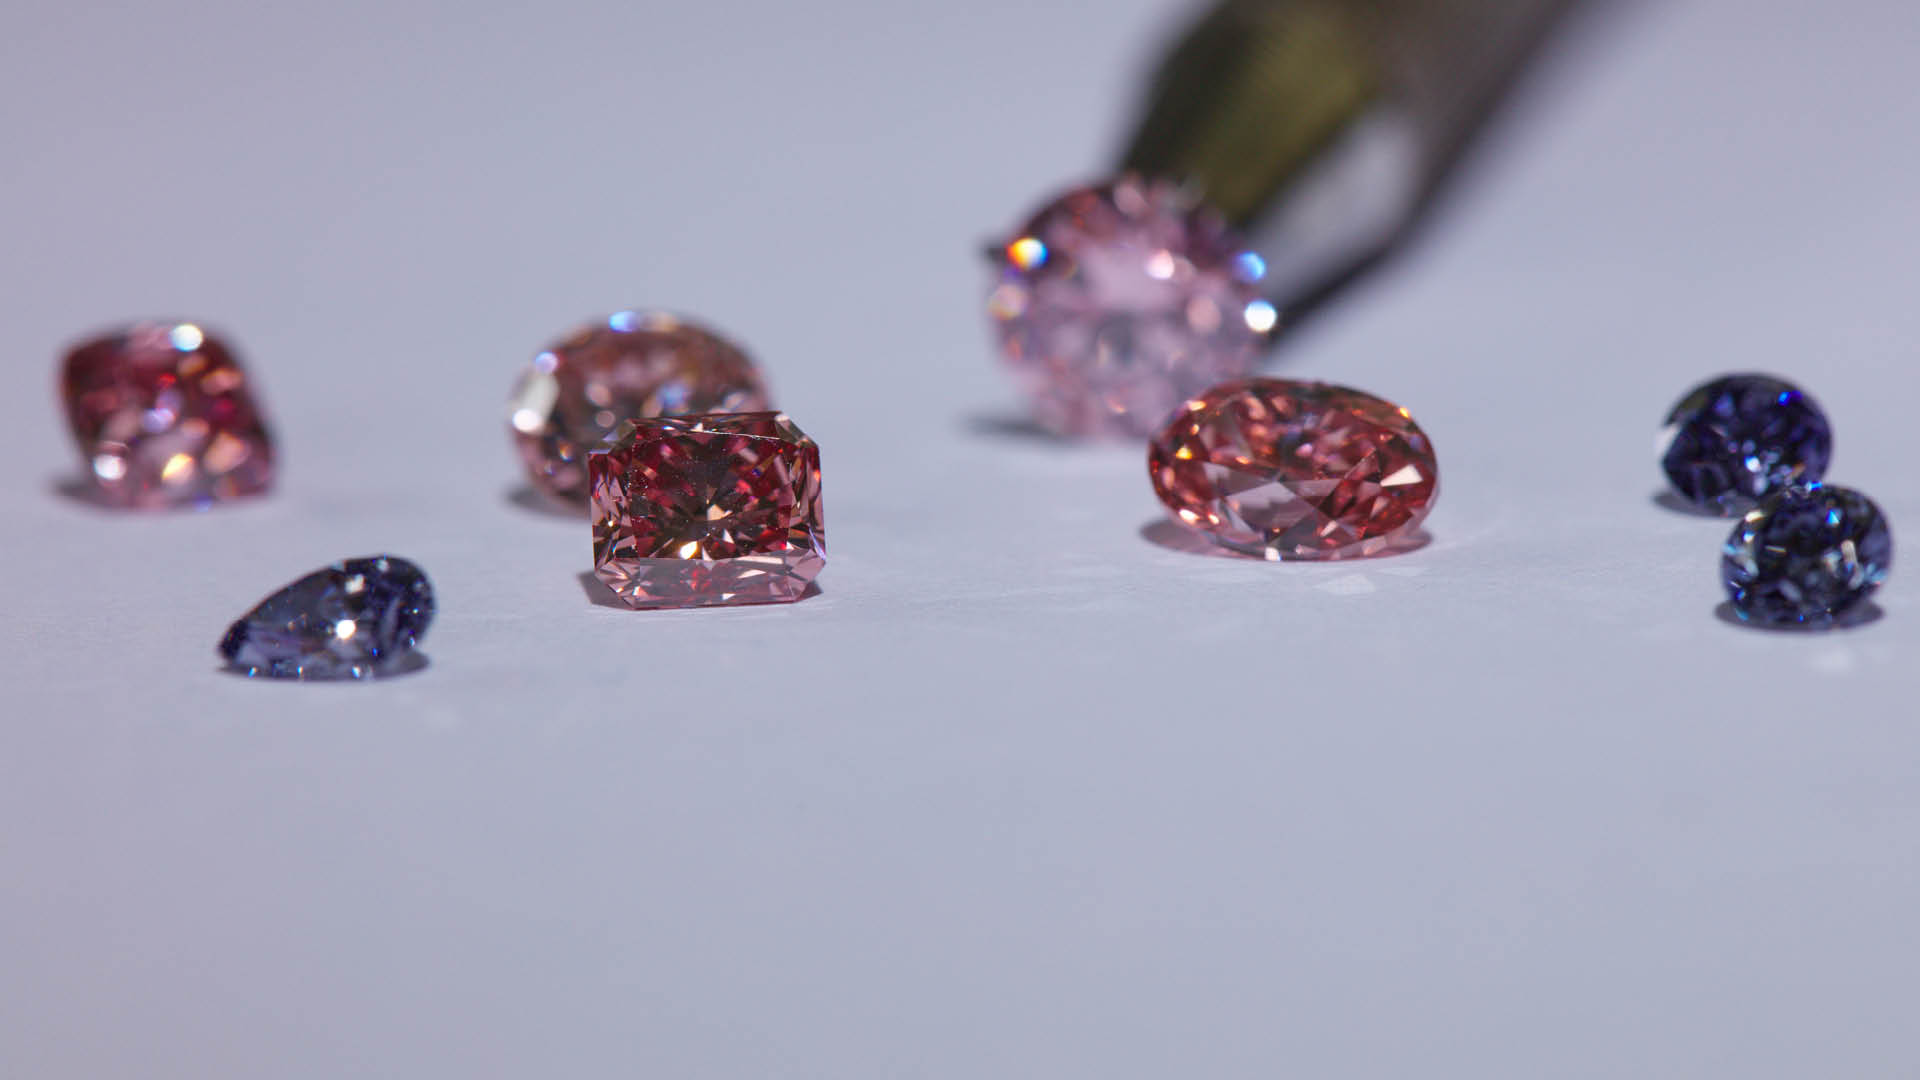 fancy our than as of diamonds fb we vivid complicate cover like red i how types natural the diamond tones before diam get there main more explain is what center pink direct blue two rare so learning hpht but its to that color guide